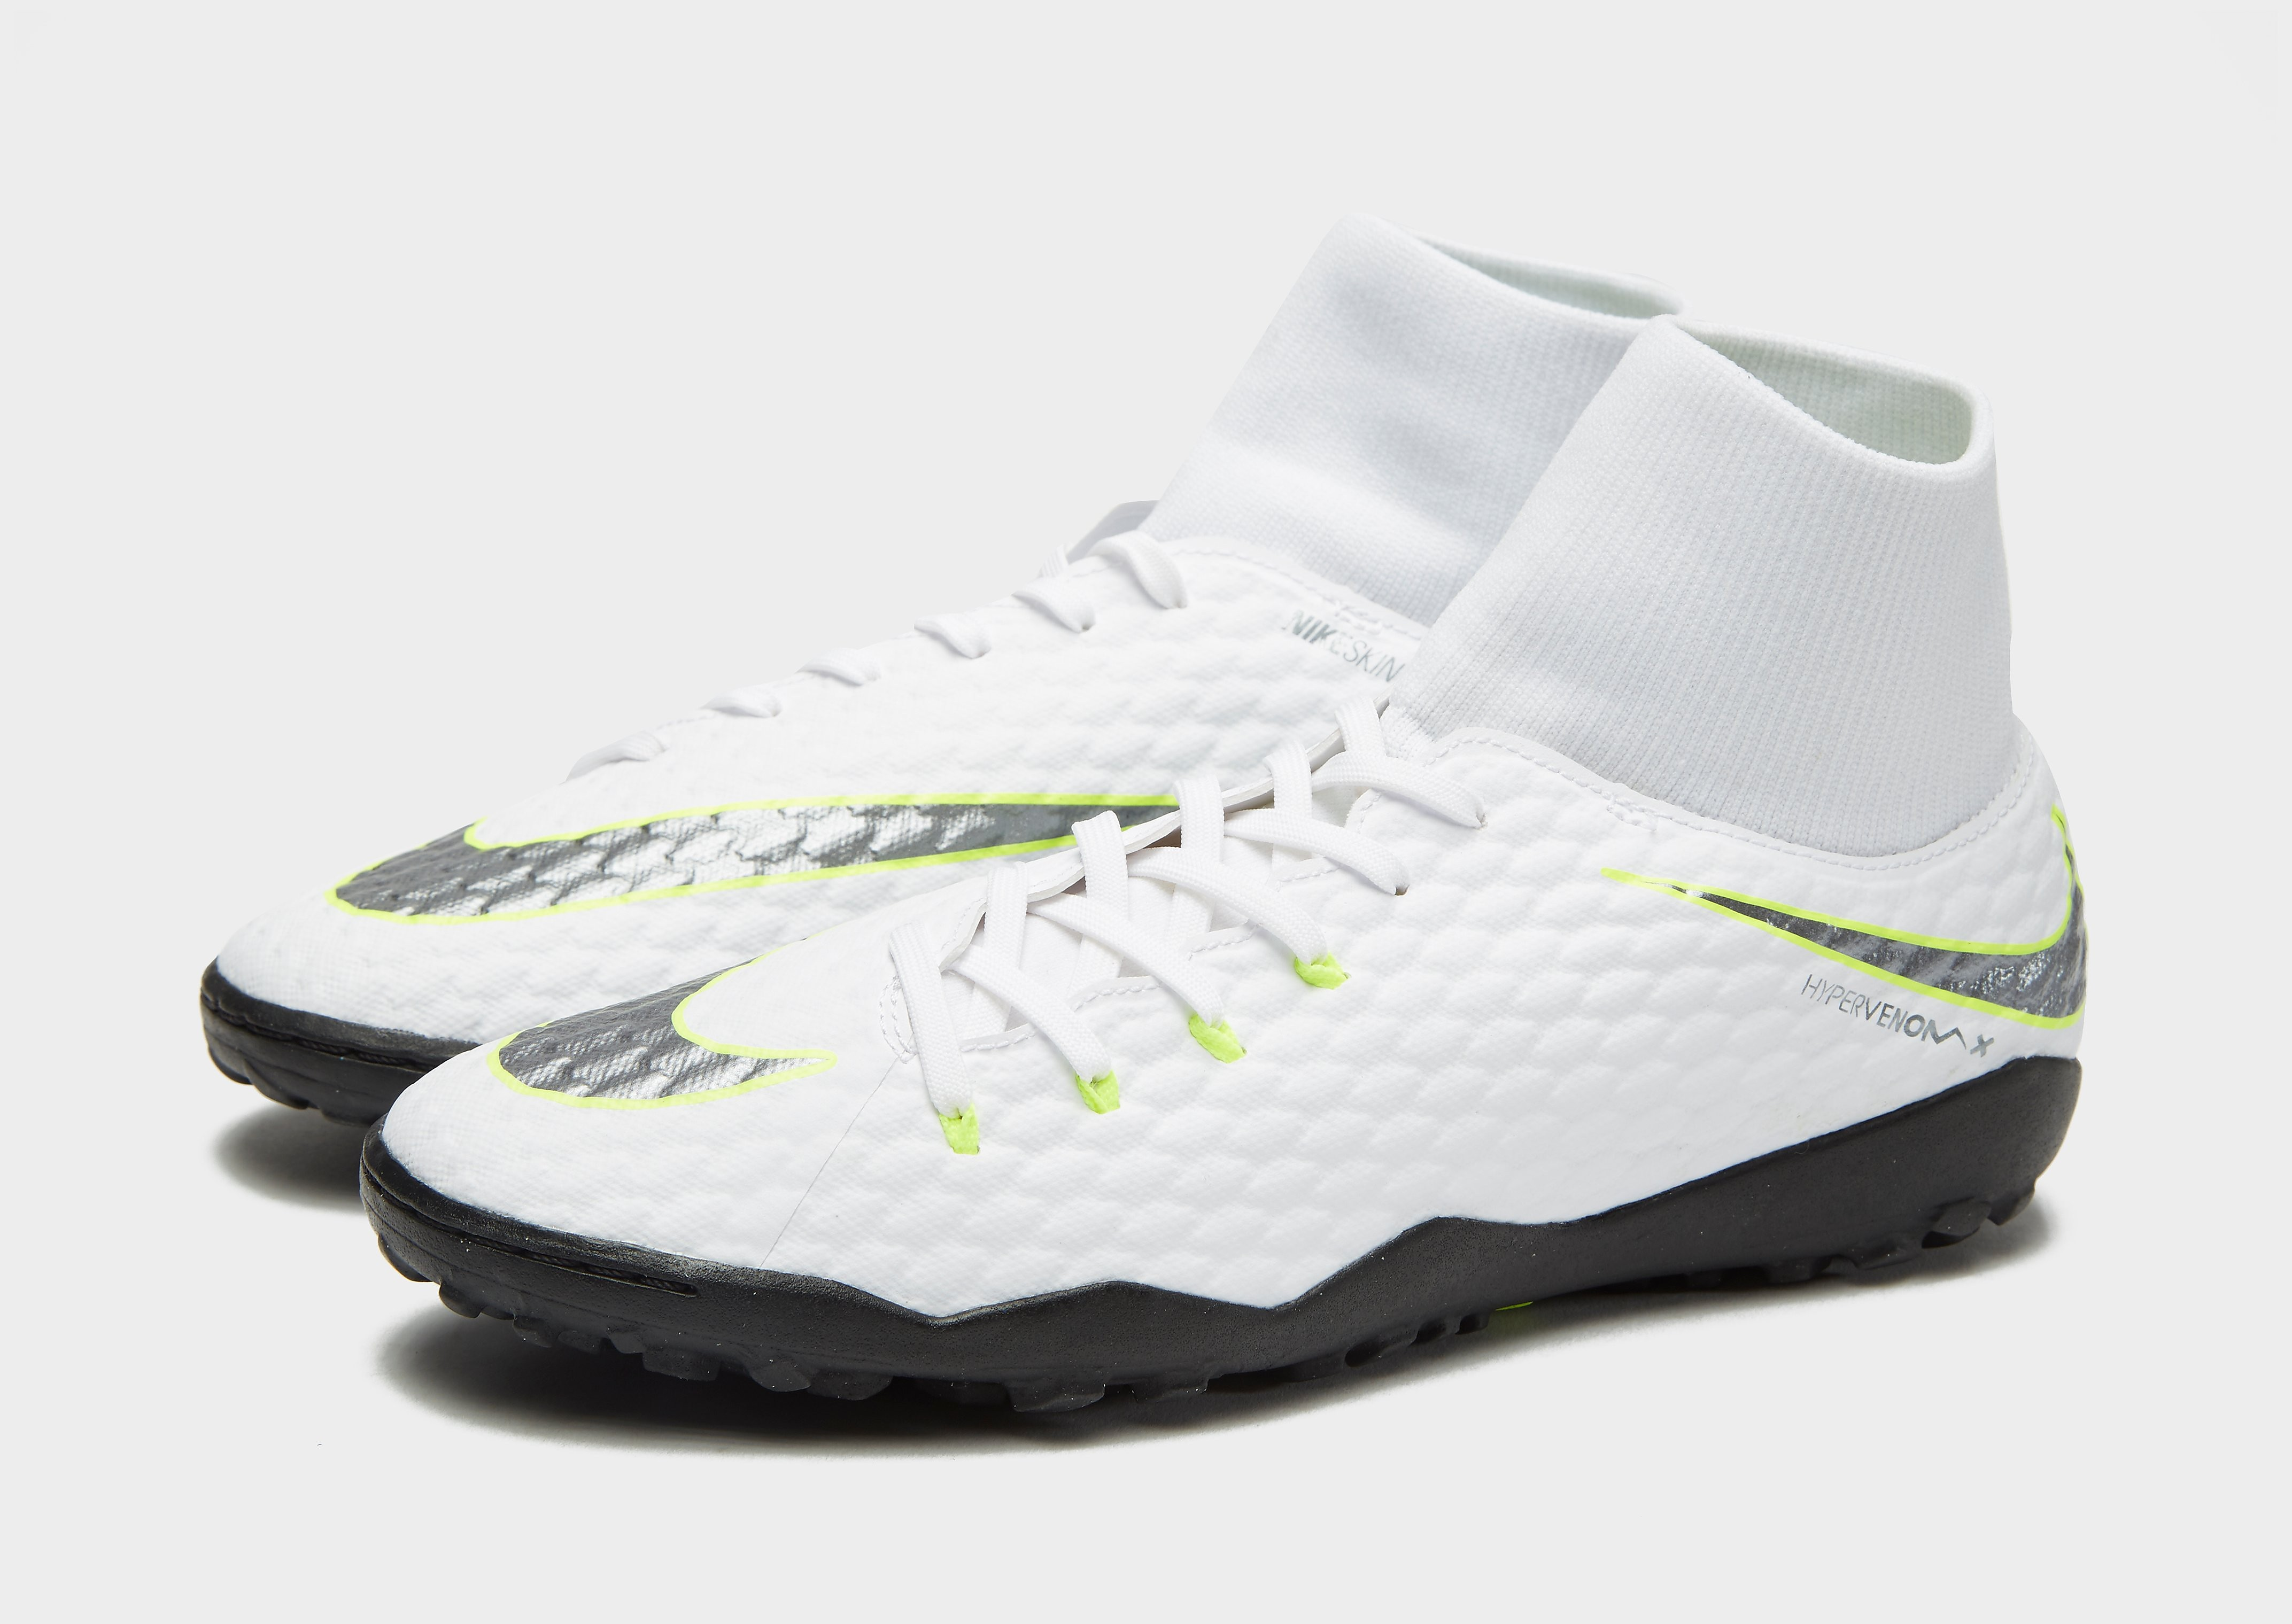 Nike Just Do It Hypervenom Phantom Dynamic Fit TF